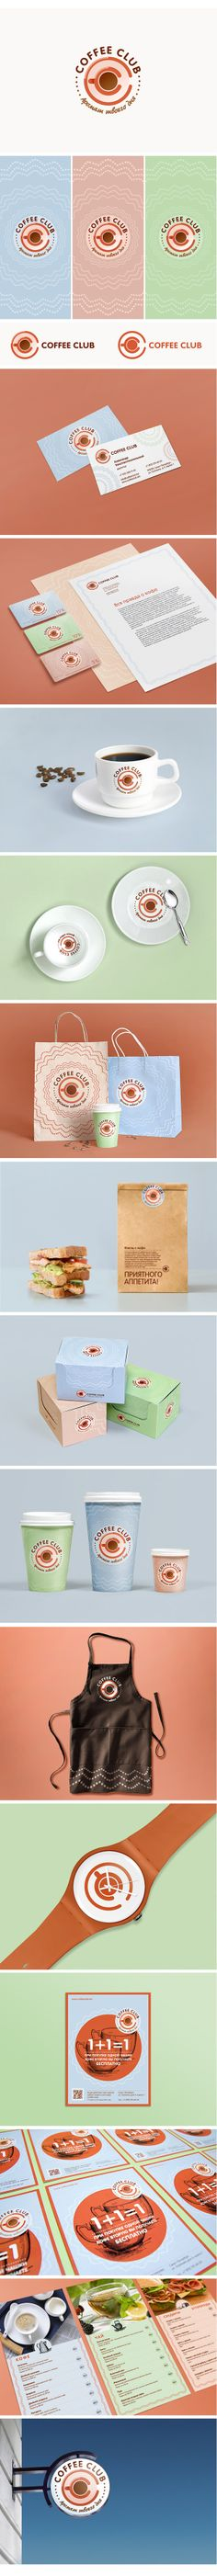 Another great coffee packaging branding marketing story curated by Packaging Diva PD